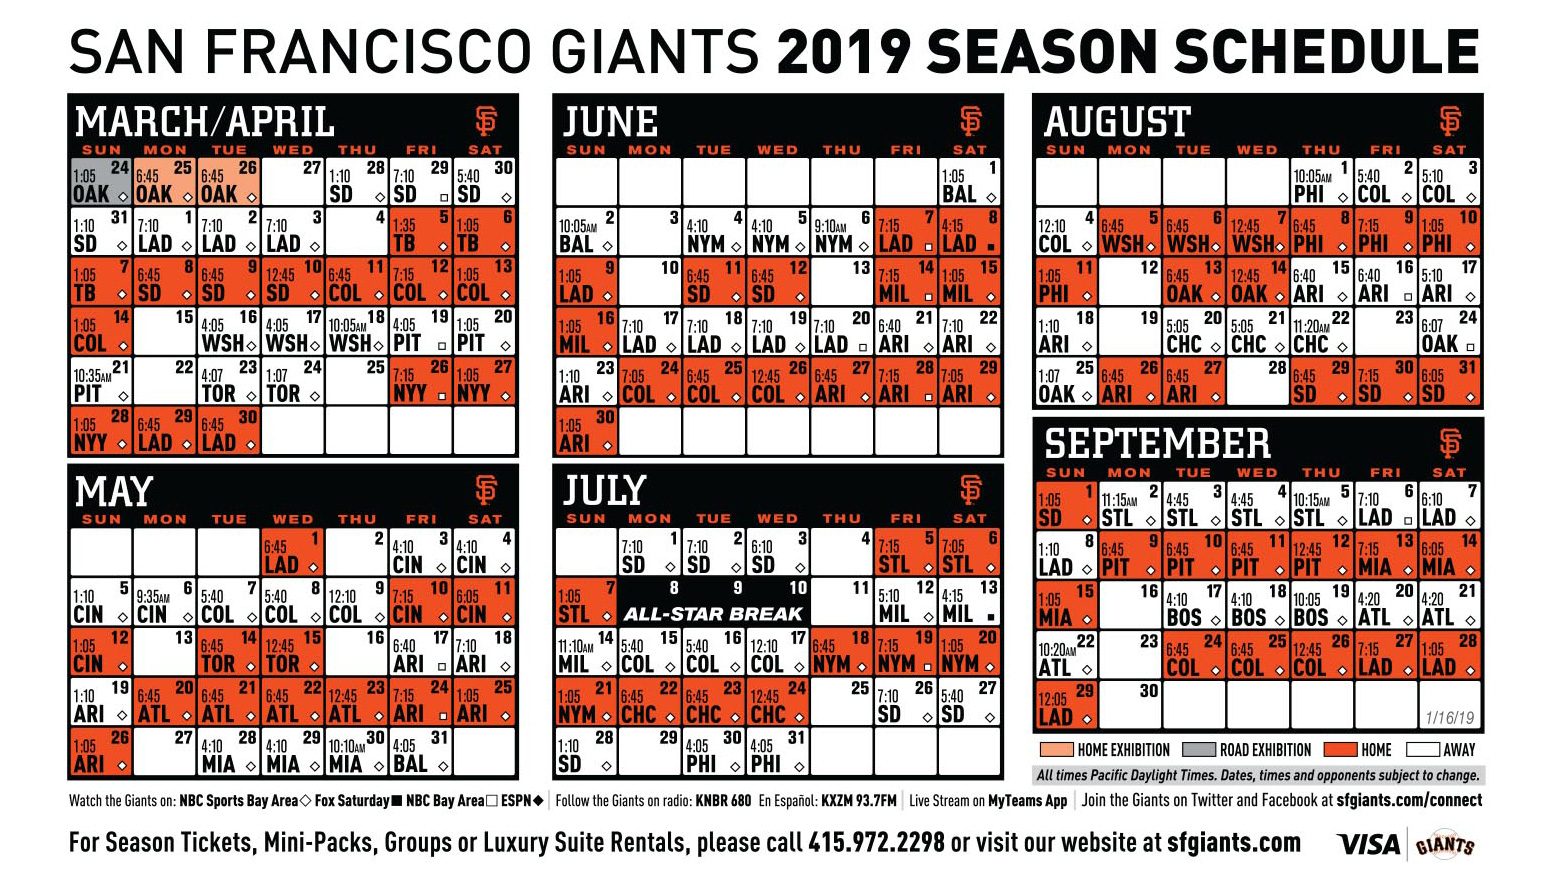 image relating to New York Yankees Printable Schedule named Giants 2019 Printable Agenda San Francisco Giants